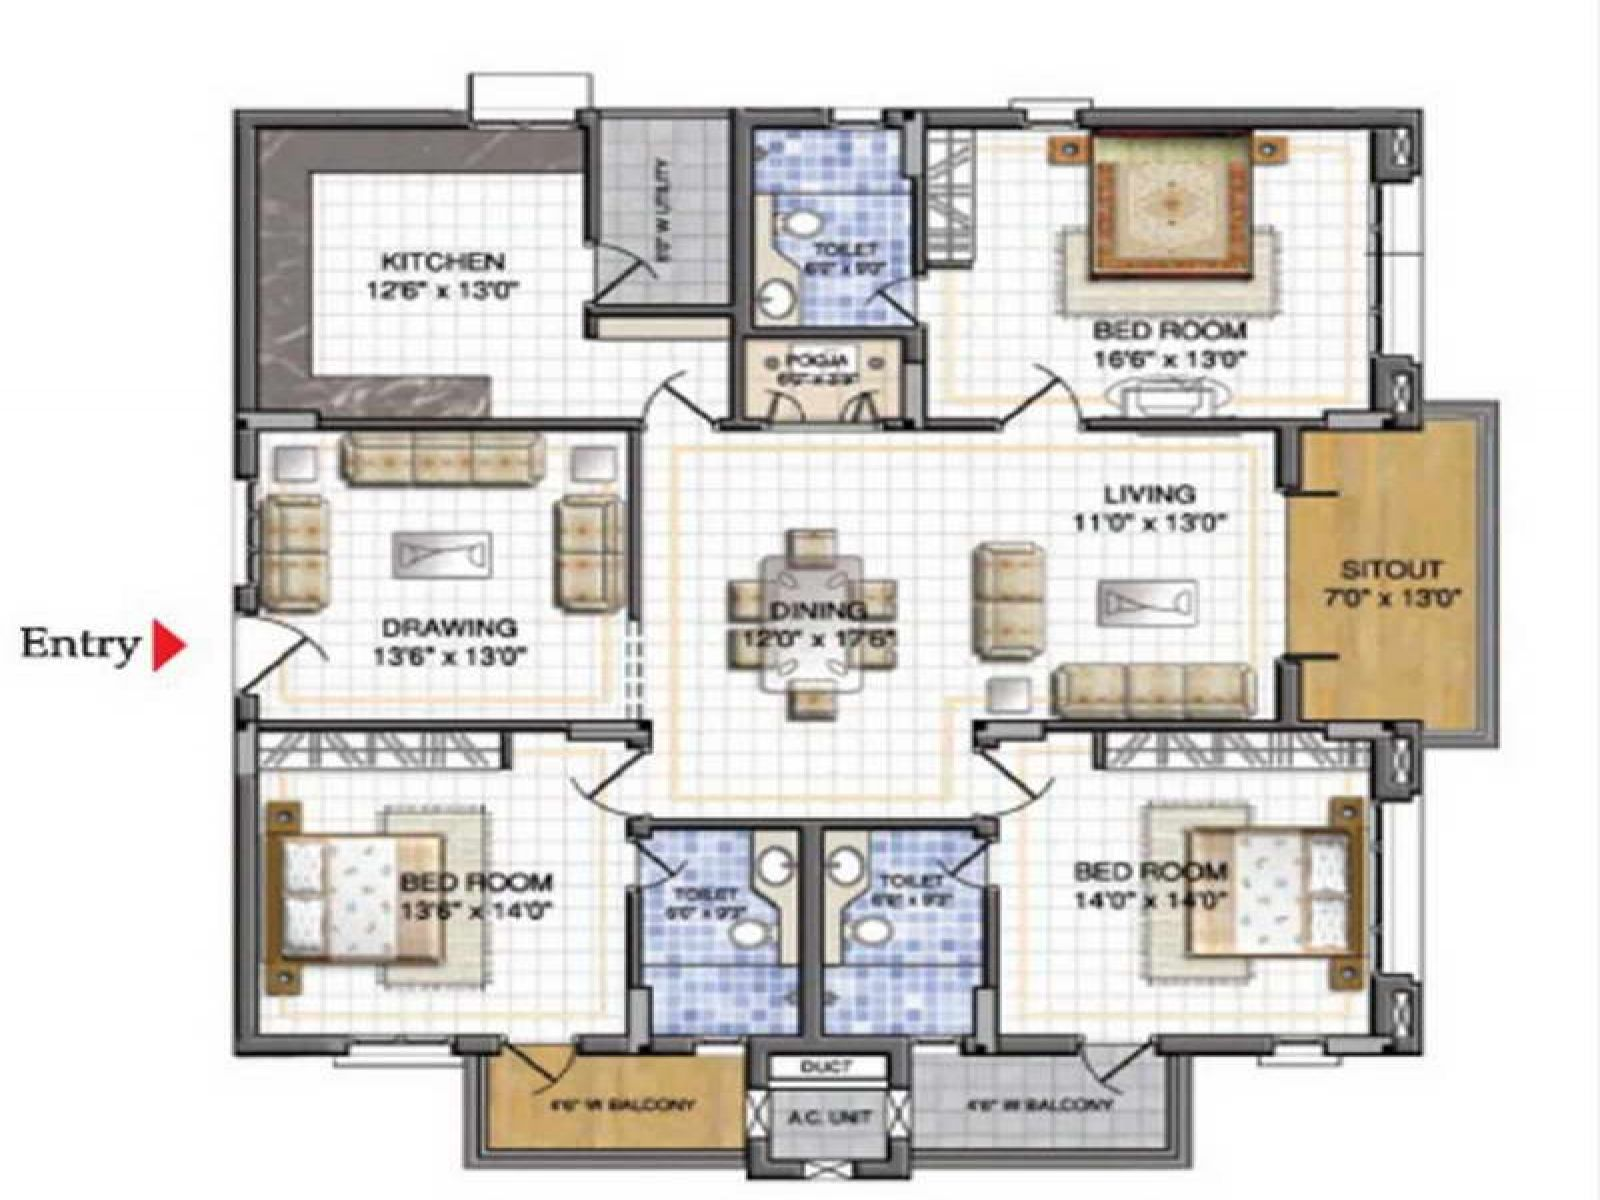 Home Plan Design Online Plans Brilliant Plan Design Software Windows Floor Free Online Terms Copyright . Design Ideas